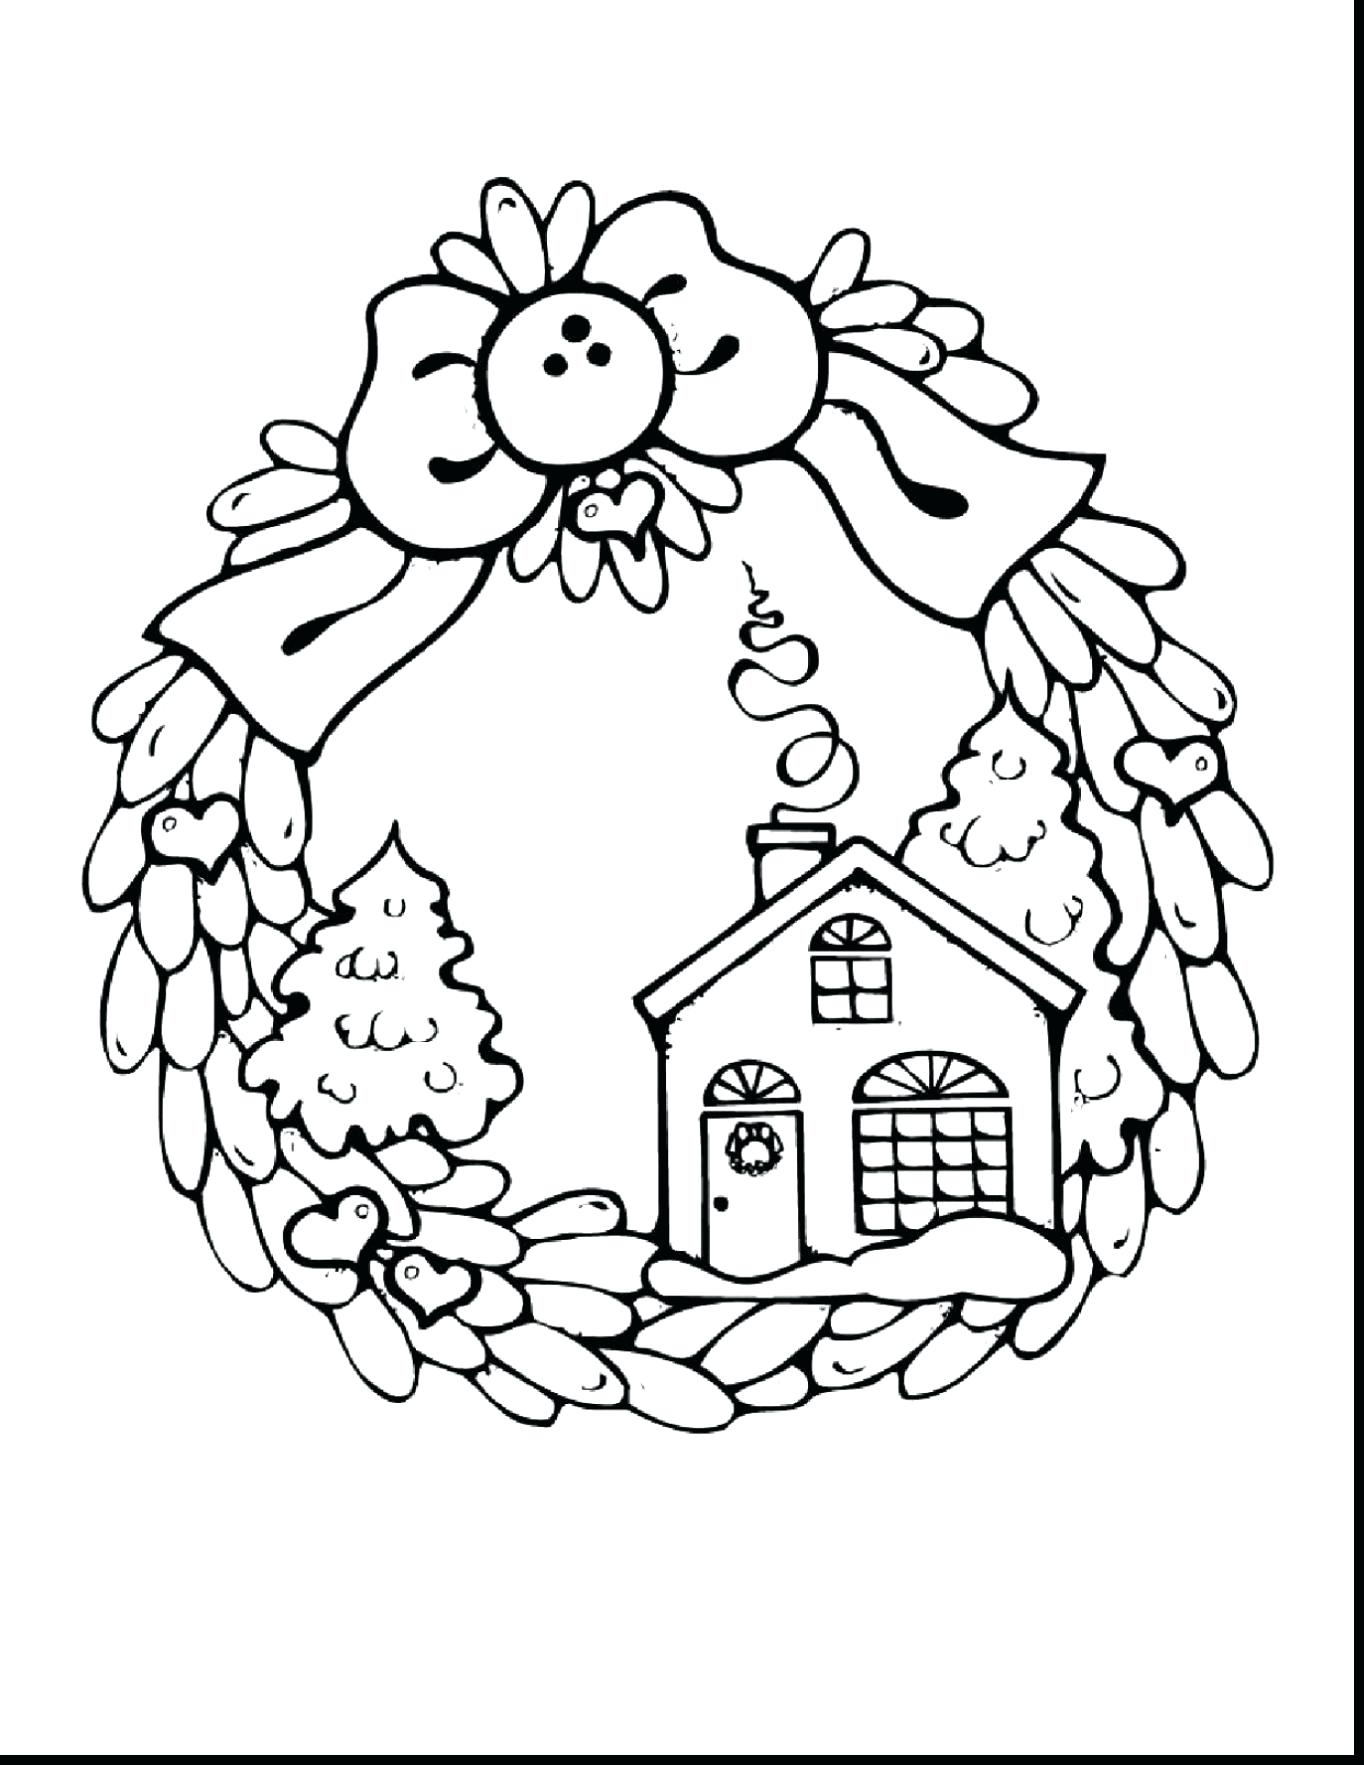 1364x1765 Coloring Peppermint Candy Coloring Pages Cane Duck Sheets